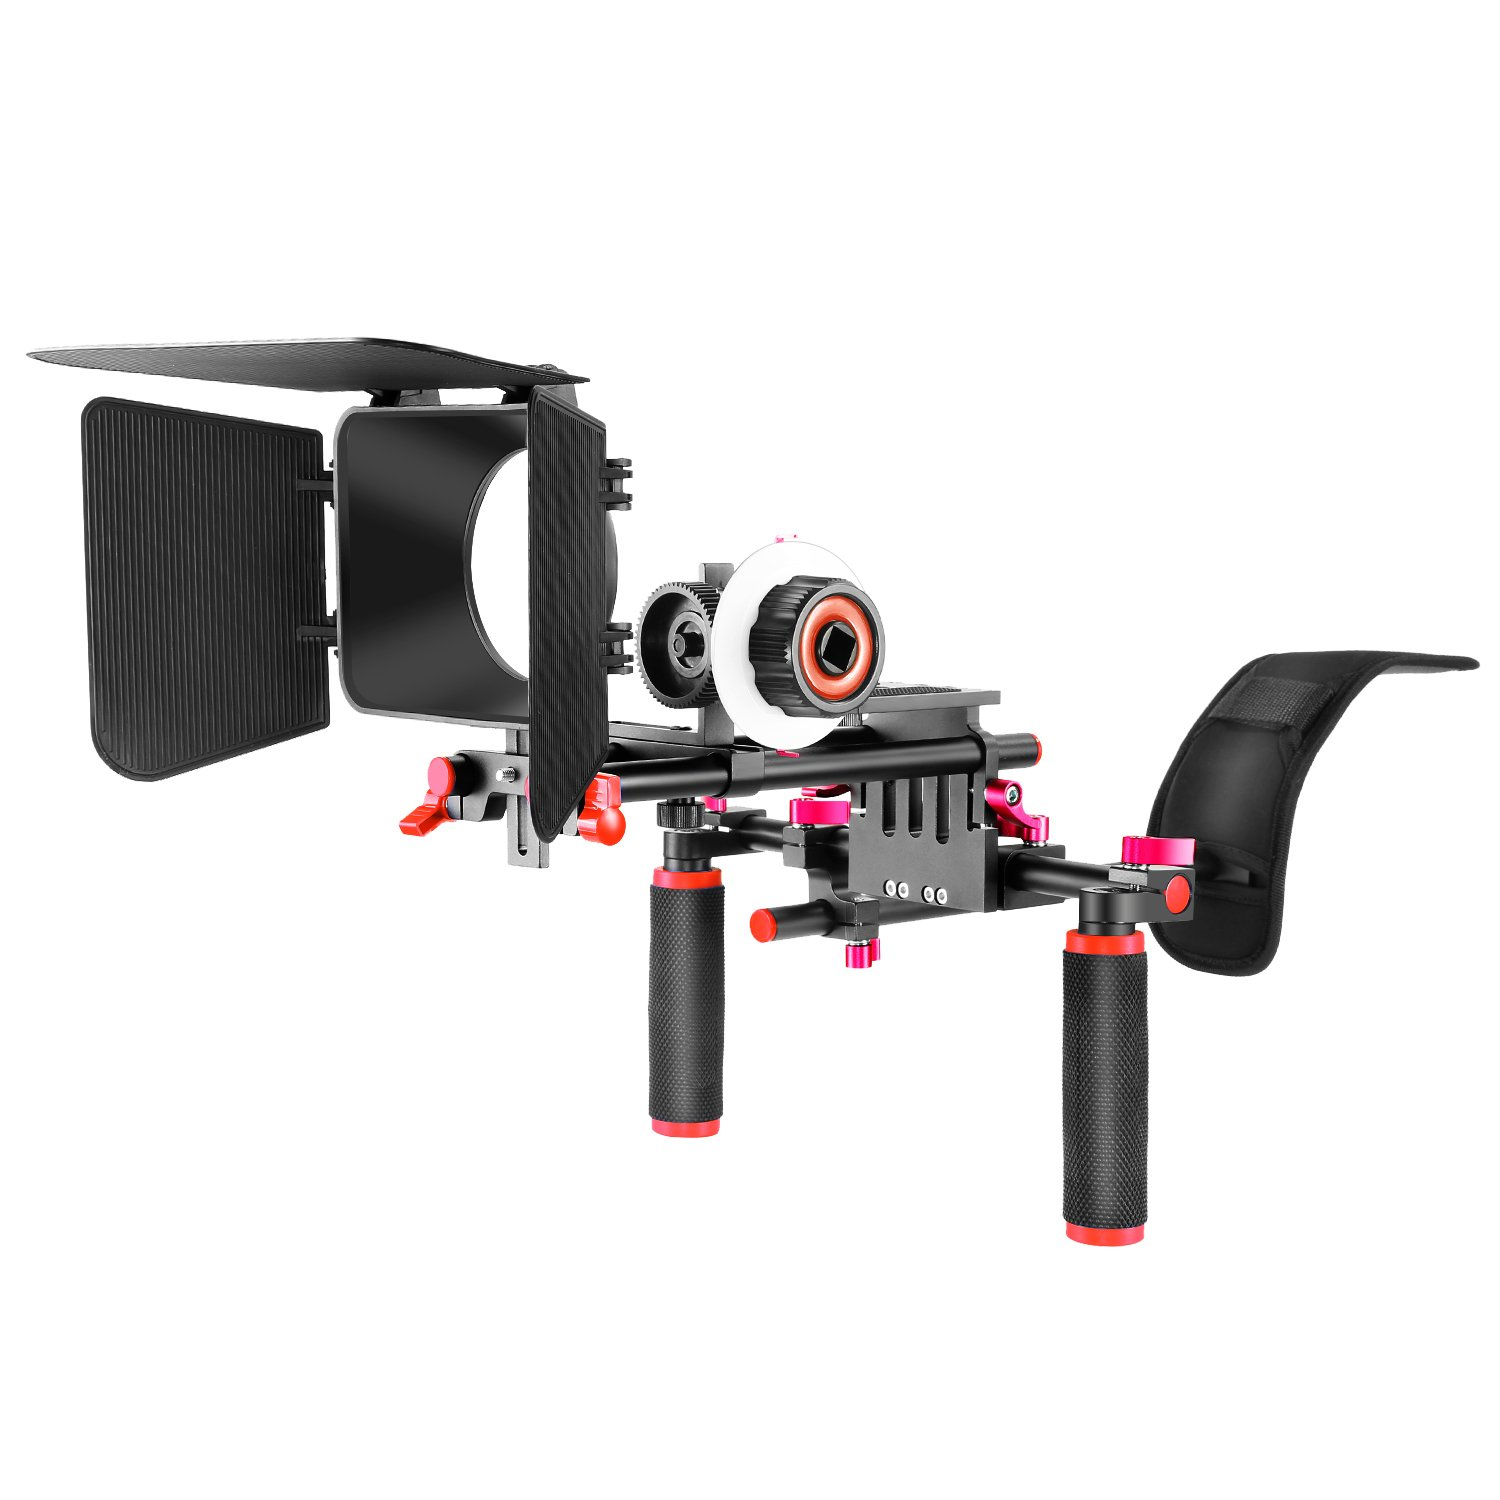 Neewer Film Movie Video Making System Kit for Canon Nikon Sony and Other DSLR Cameras Video Camcorders, Includes: Shoulder Mount, 15mm Rod, Follow Focus, Matte Box (Red)